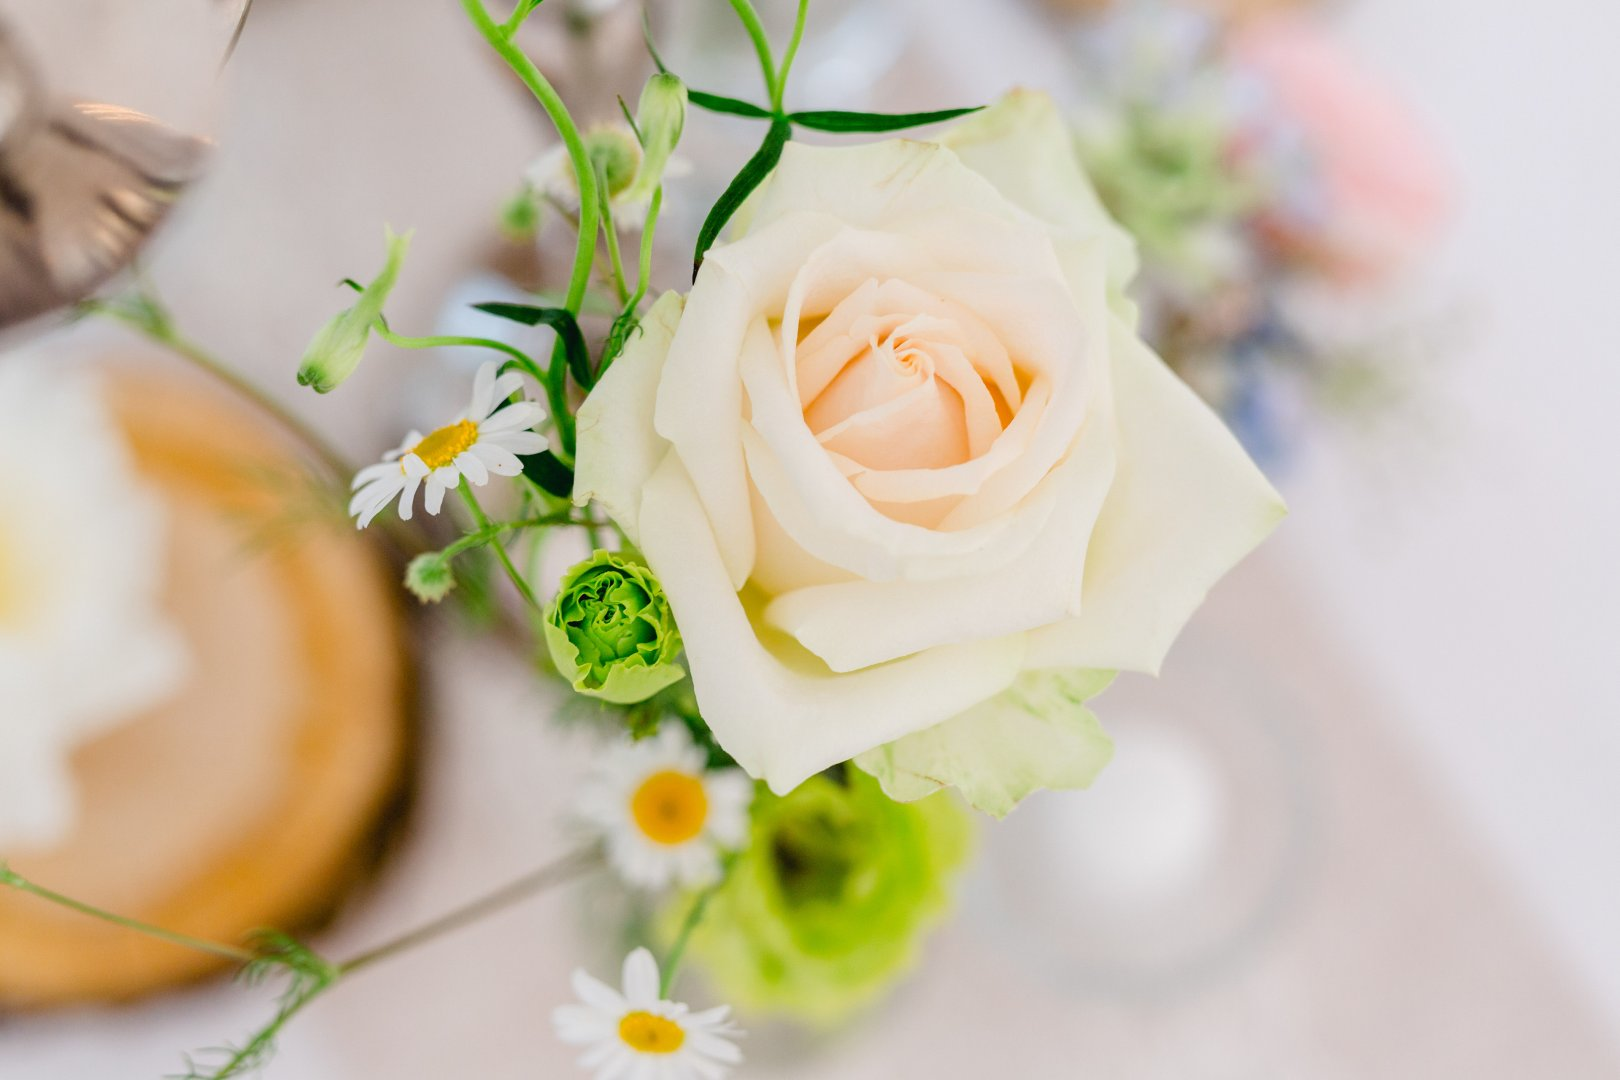 Flower Yellow Bouquet Rose Garden roses Cut flowers Plant Rose family Flower Arranging Floral design Floristry Petal Peach Rose order Icing Artificial flower Still life Centrepiece Flowering plant Plant stem Wedding ceremony supply Still life photography